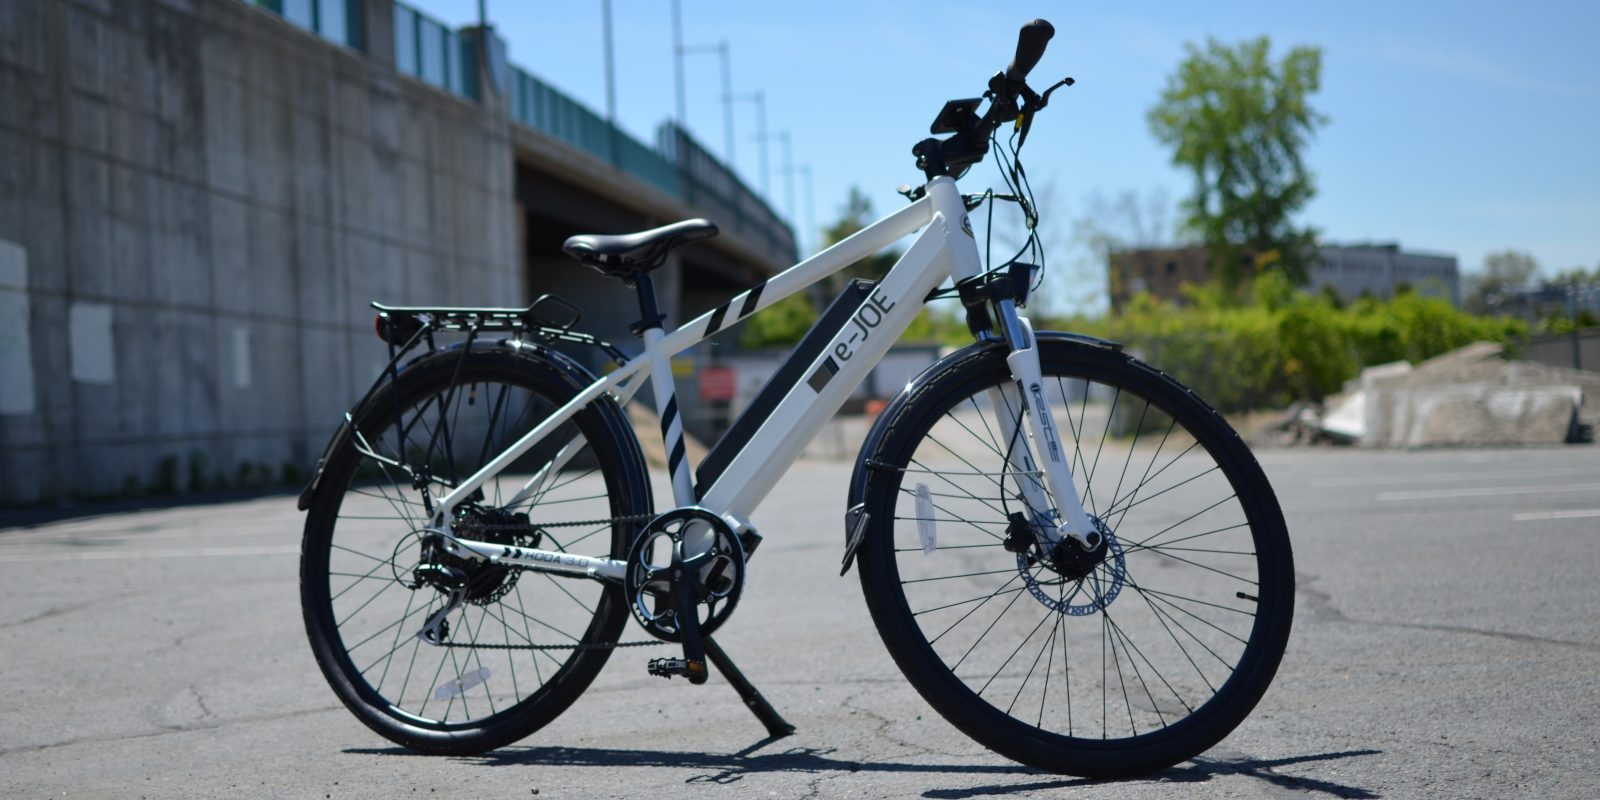 b44c1a08a9f The e-JOE KODA 3.0 electric bike looks a bit like a standard hardtail mount  bike. However, it's really an all-terrain commuter with plenty of battery  to ...